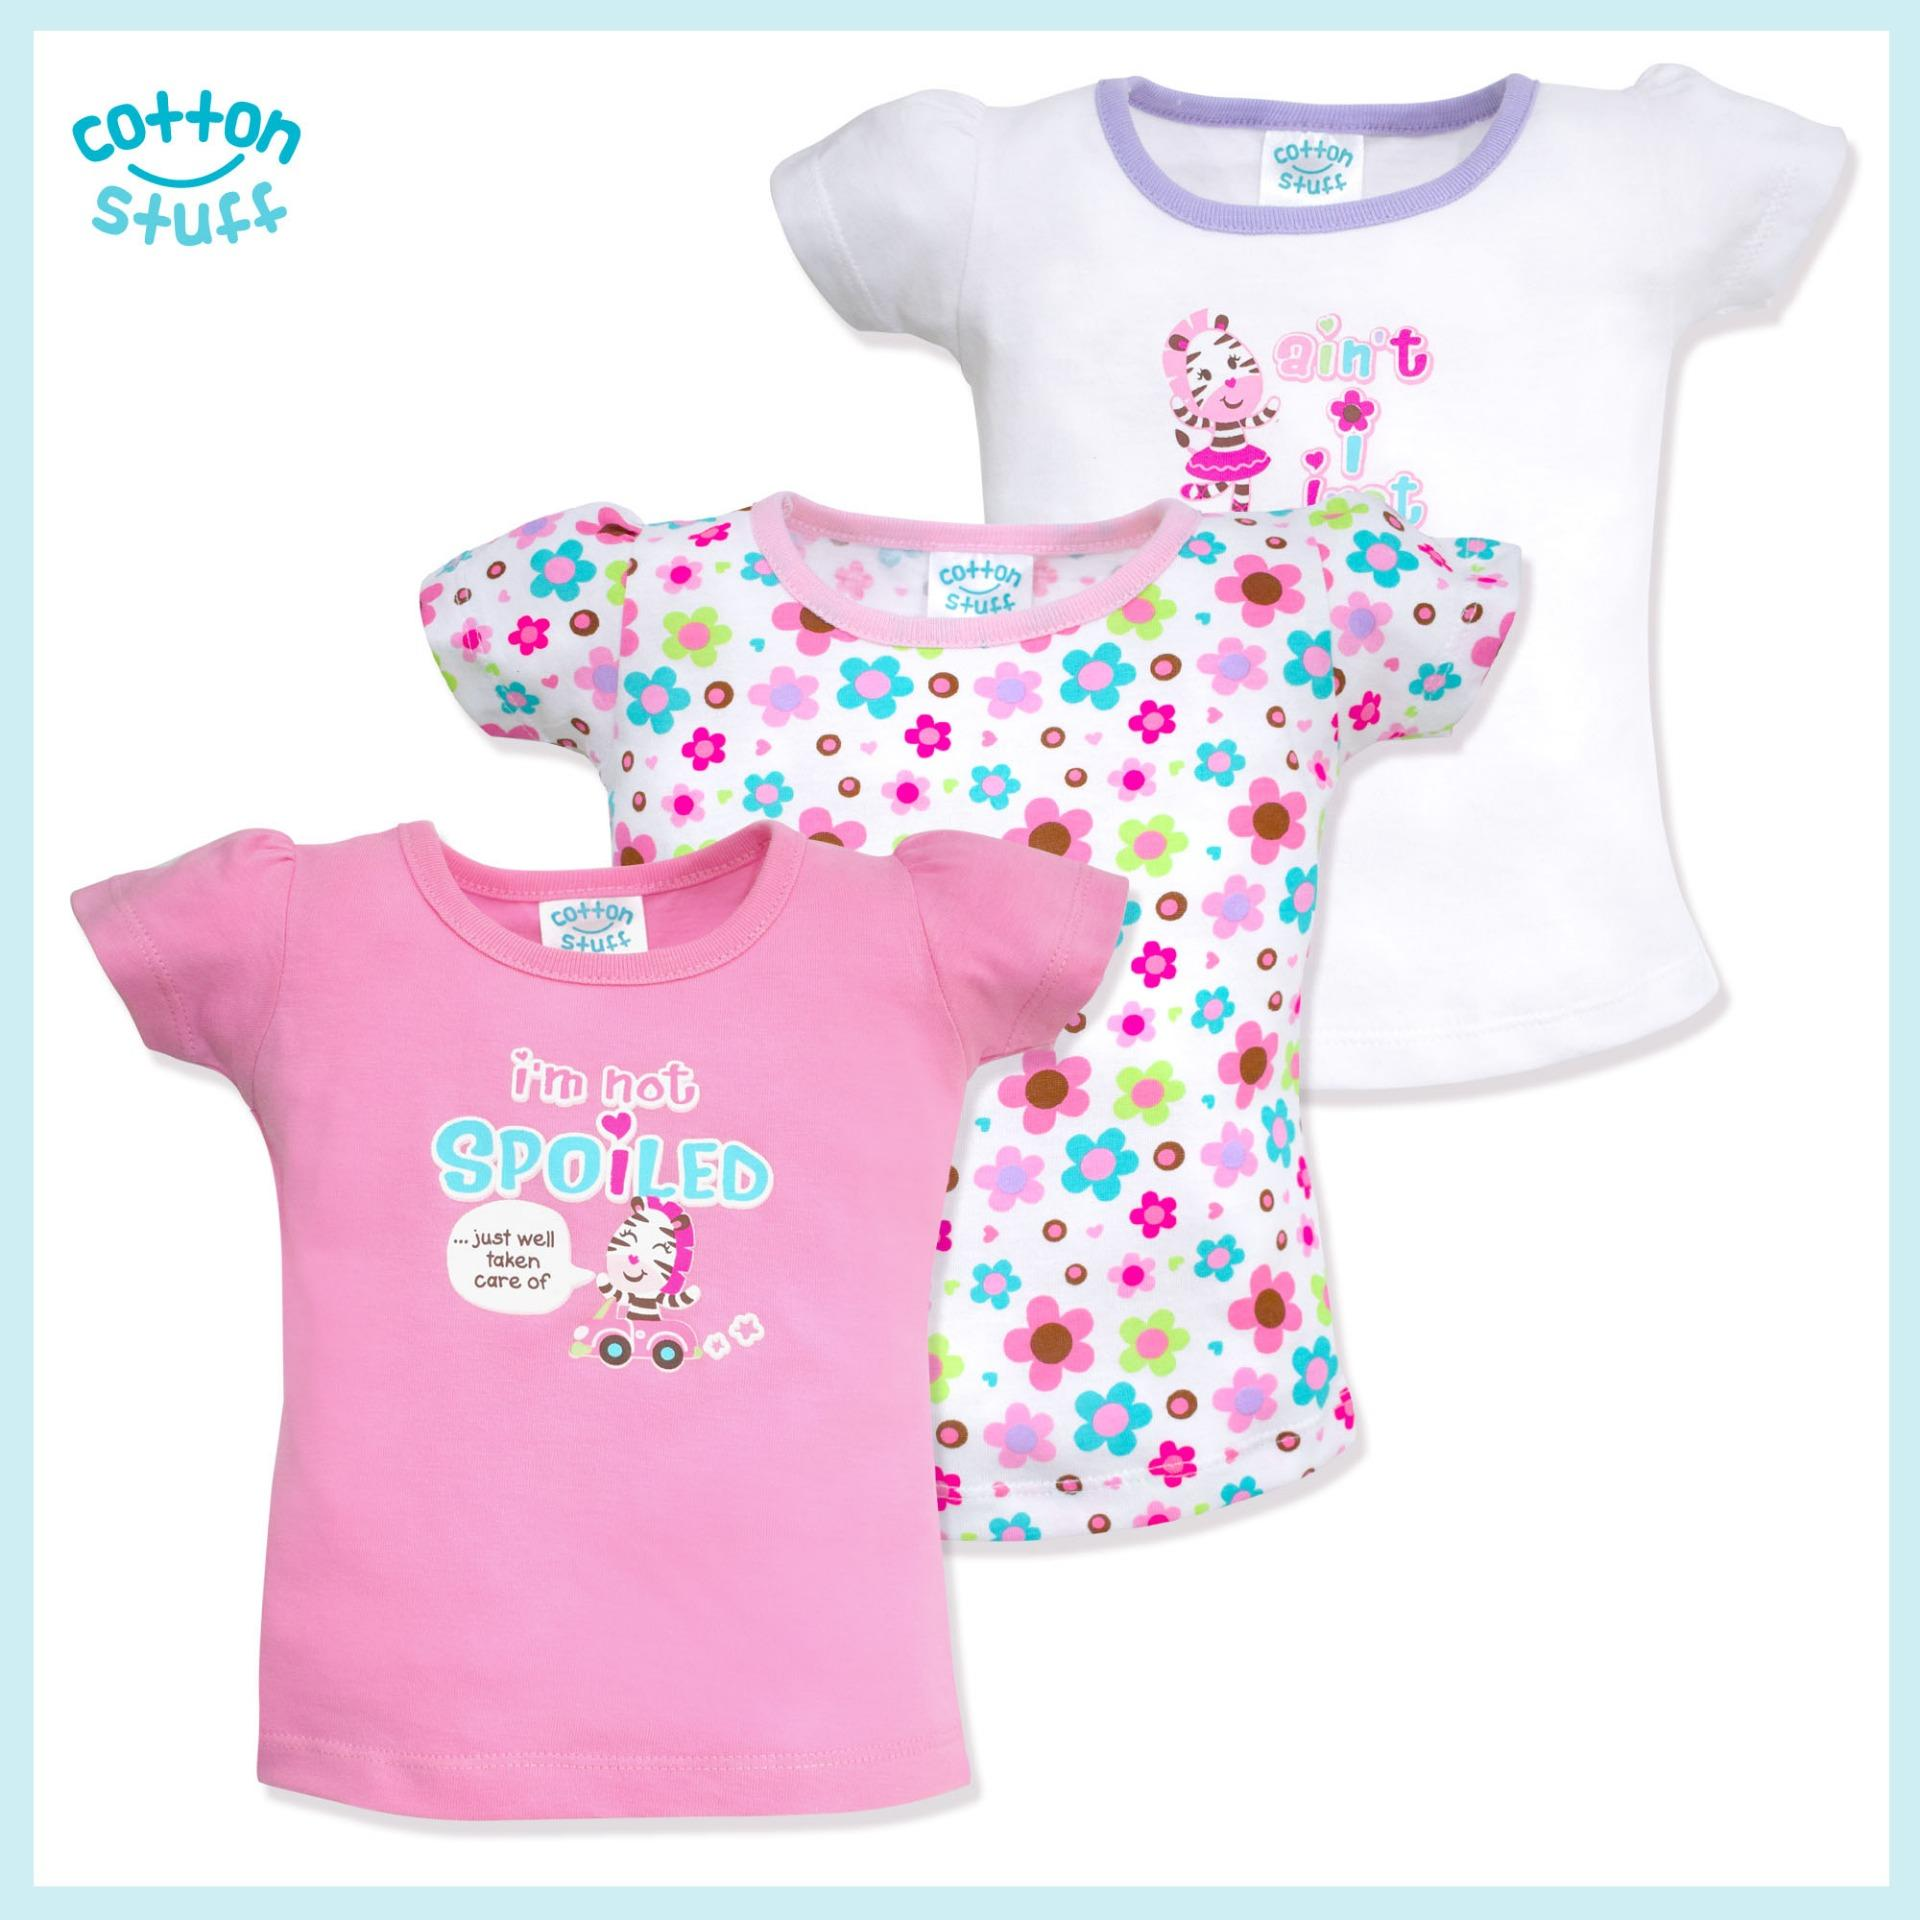 ac0c1f215 Cotton Stuff - 3-piece Short Sleeve Fitted Blouse (Girls and Their Toys)